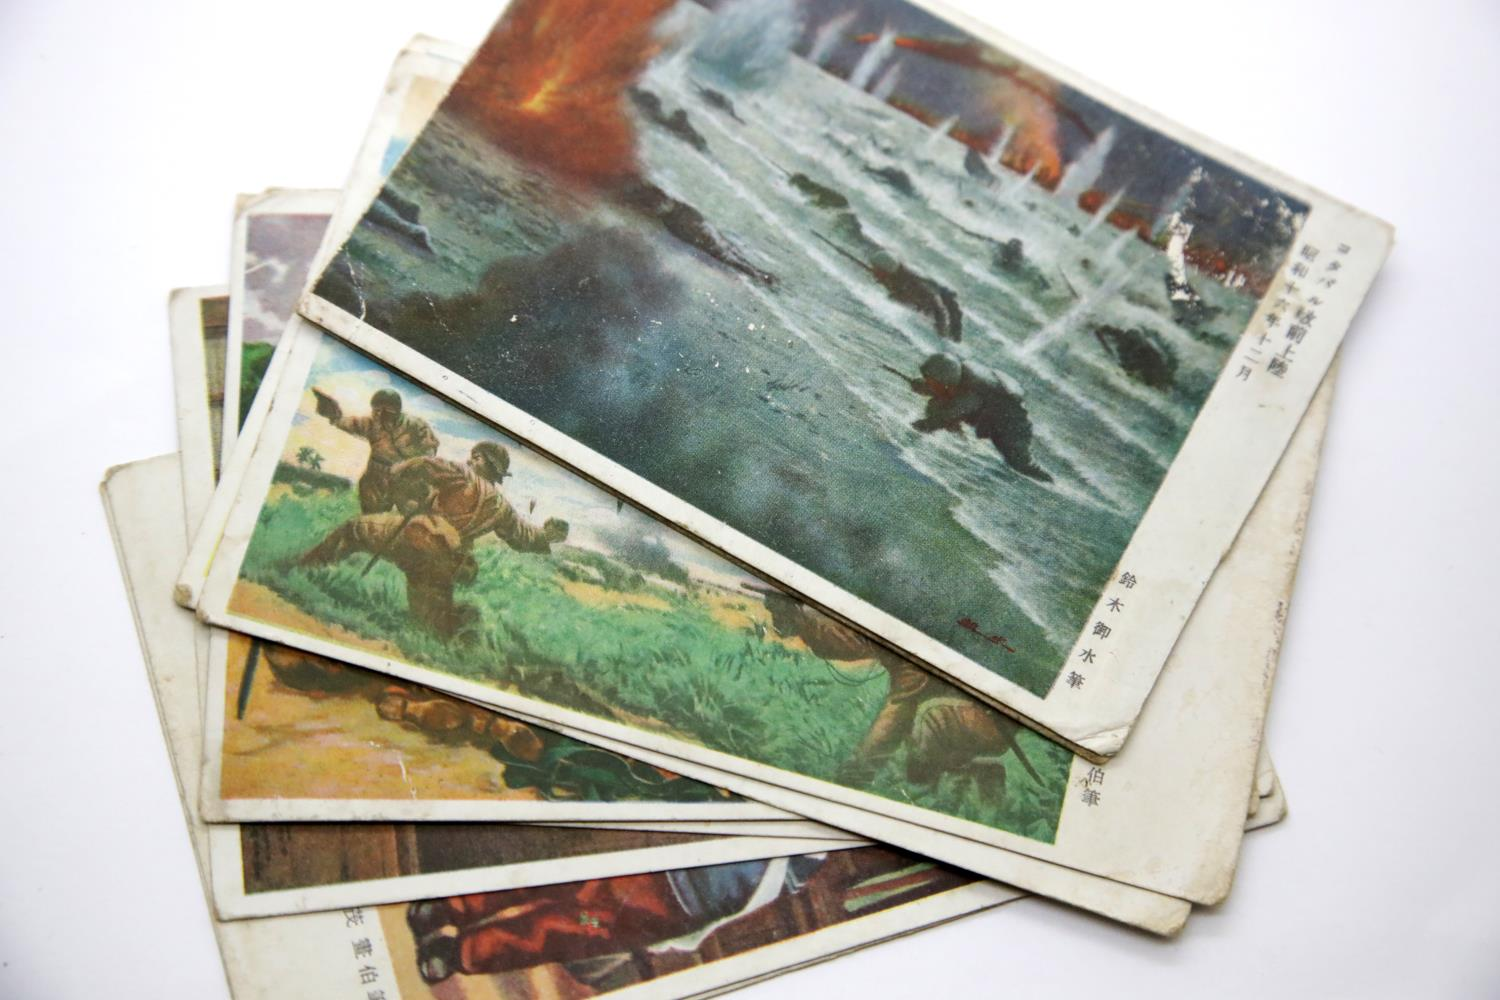 Lot 3051 - Nine Japanese WWI type postcards displaying military scenes, many annotated. P&P Group 1 (£14+VAT